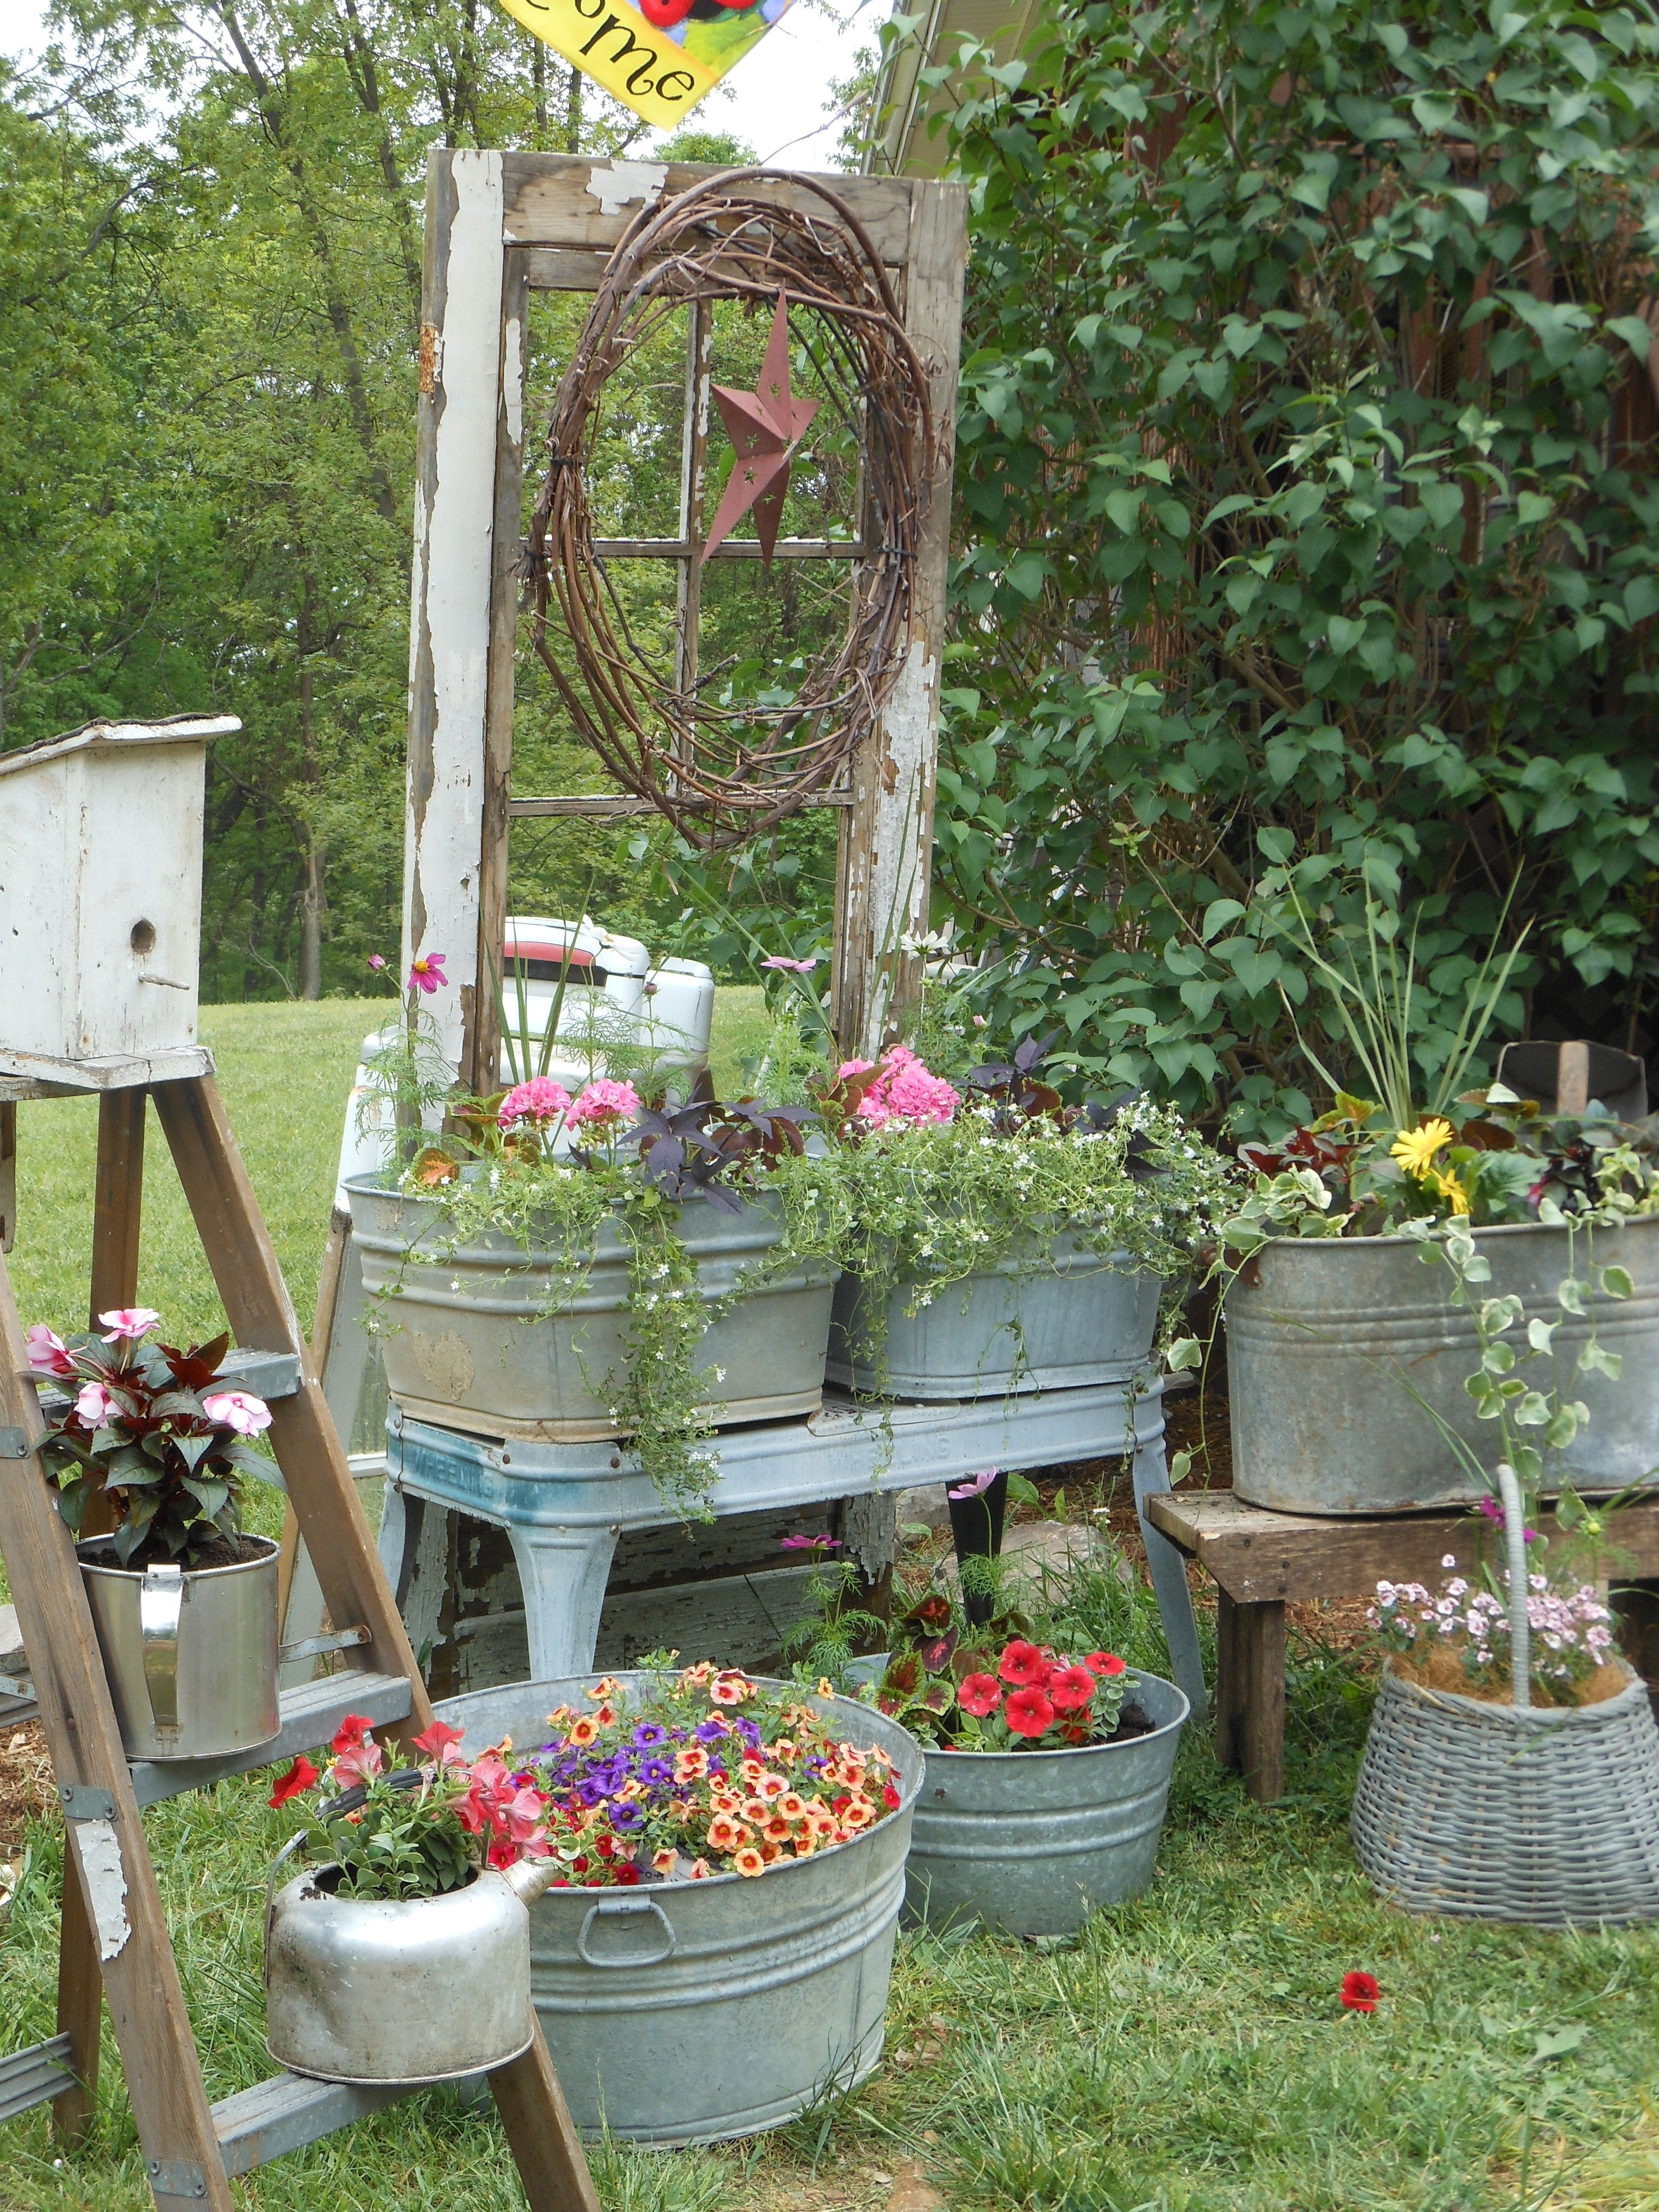 Country Garden I Love Things Planted In Metal Tubs, Wine Barrels, And Giant  Planter Boxes.I Add Old Tractor Wheel And Old Rustying Old Pottery Platers  And ...